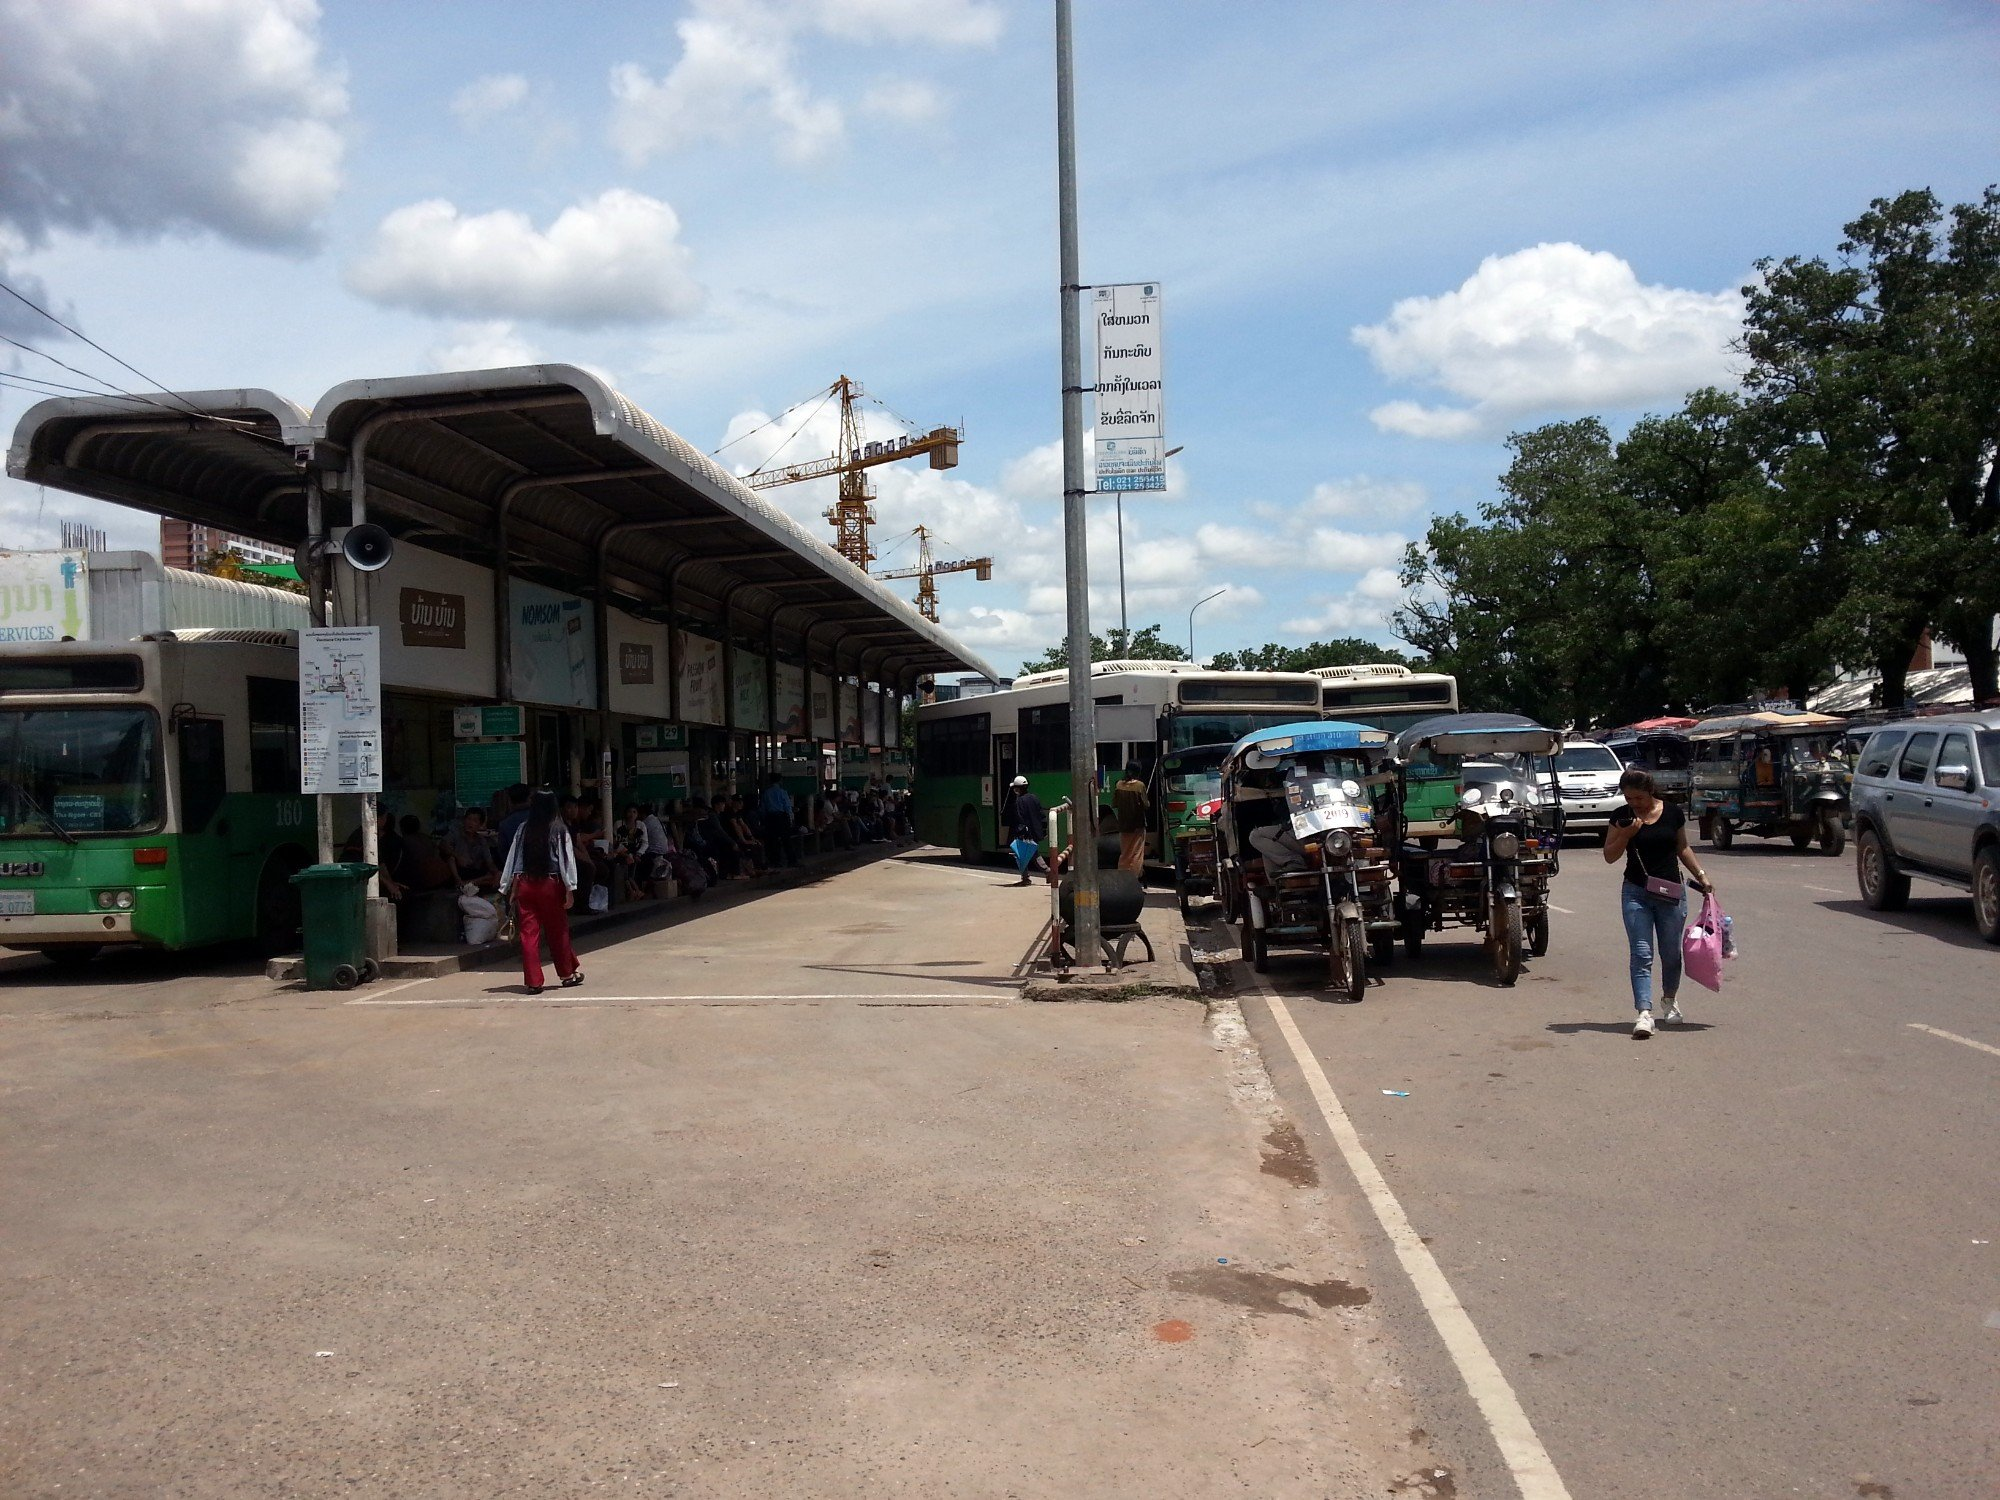 Bus platforms at Vientiane Central Bus Station